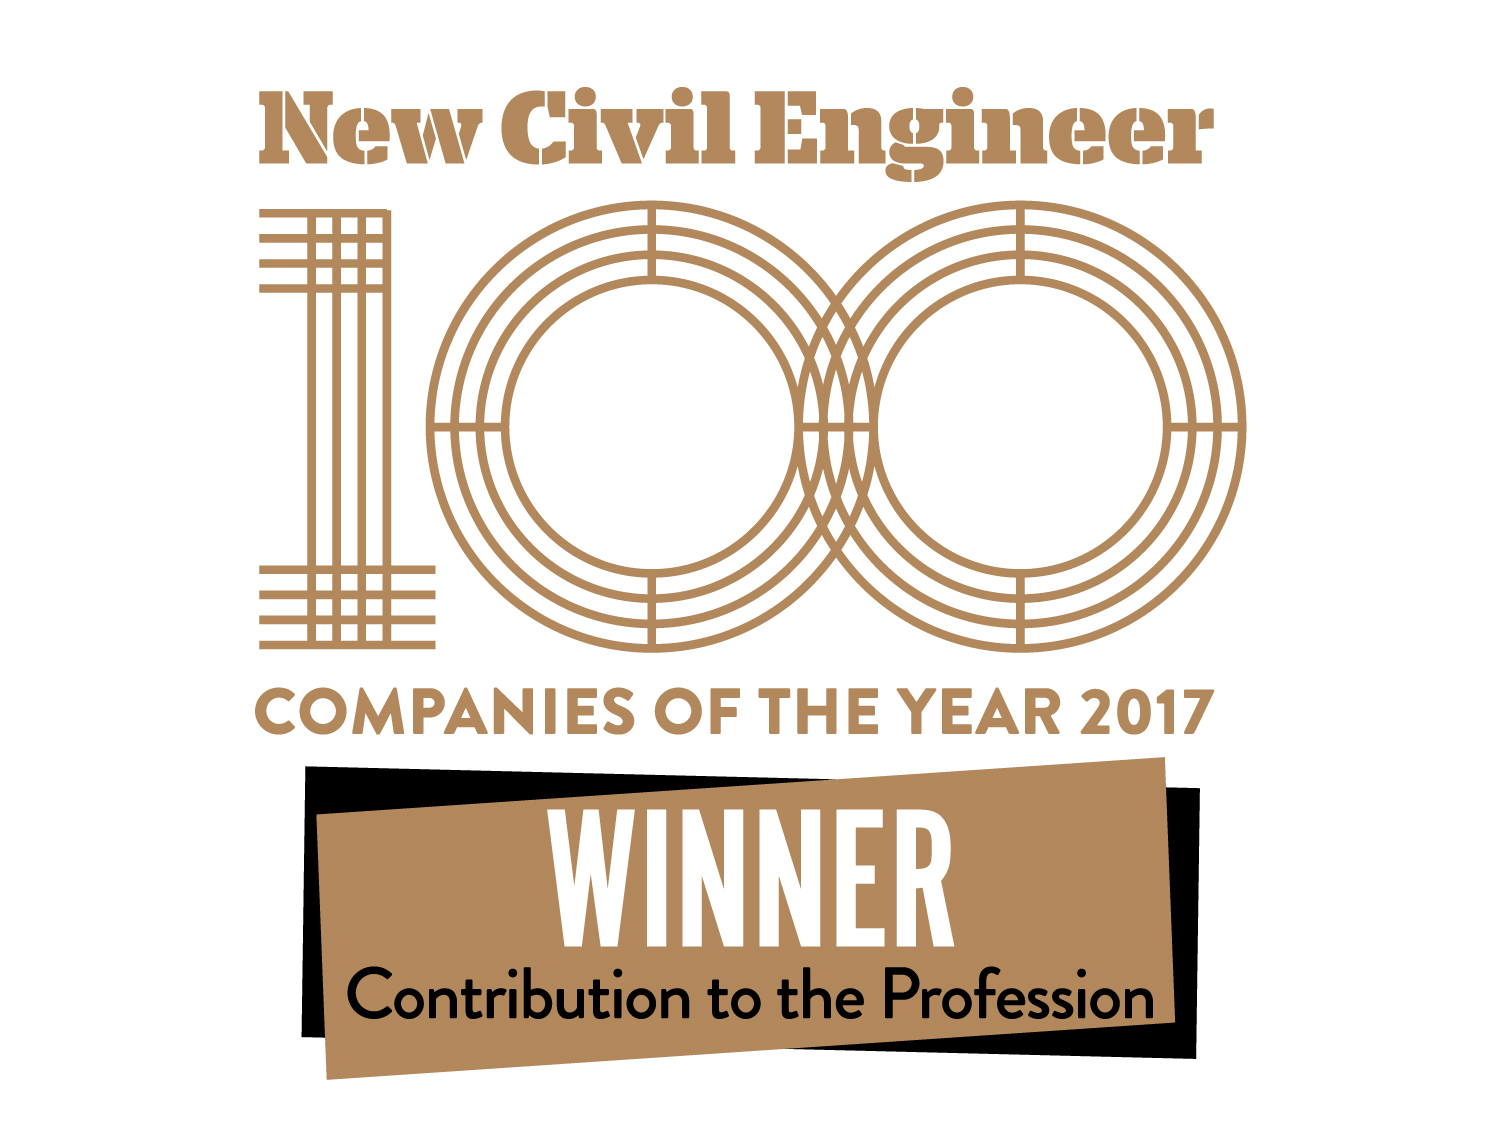 NCE100 Contribution to the Profession 2017